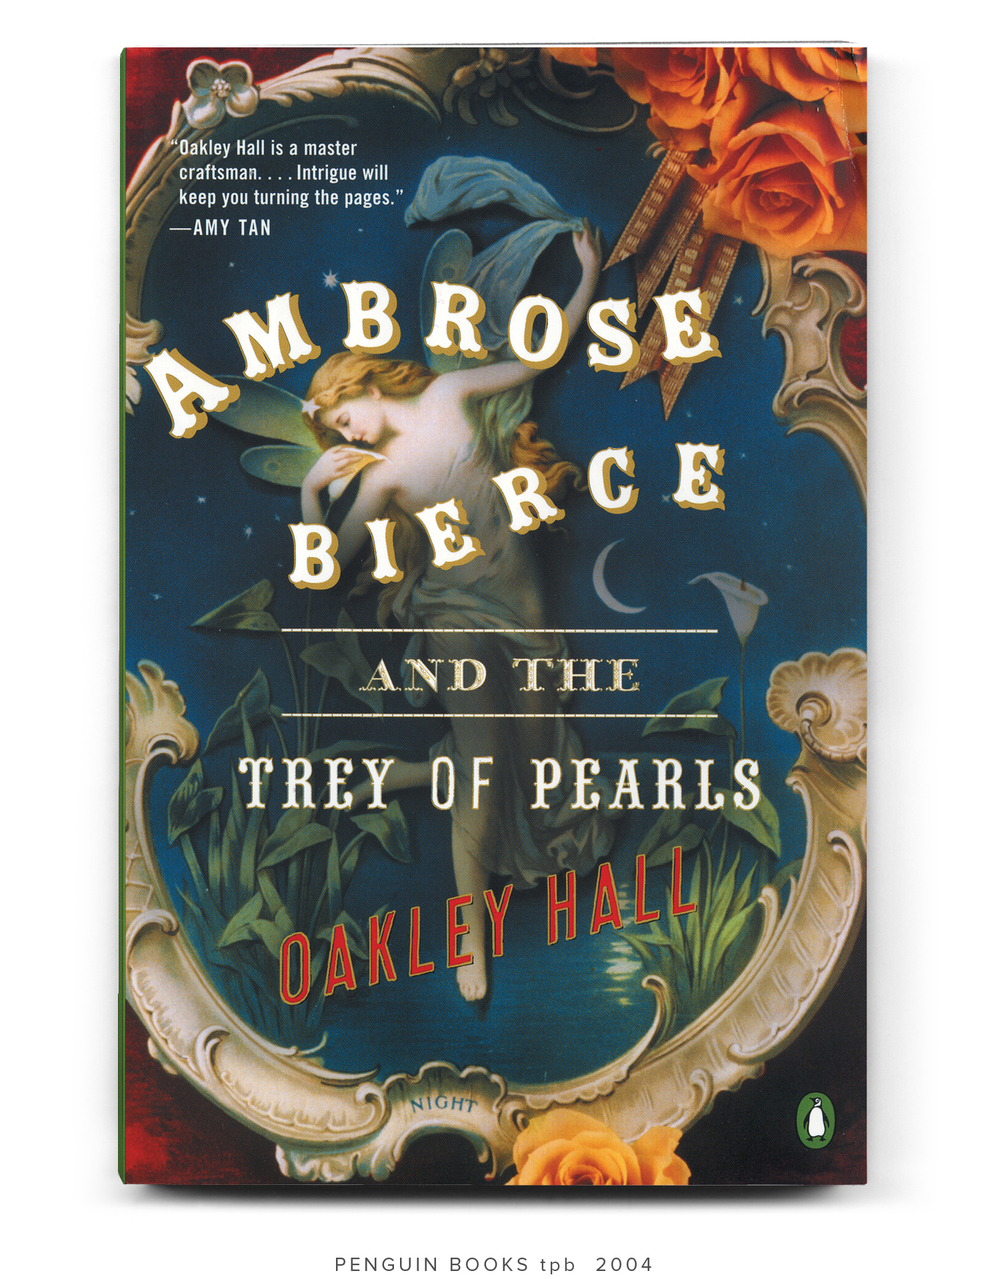 AMBROSE-BIERCE-AND-THE-TREY-OF-PEARLS-tpb-ss6.jpg